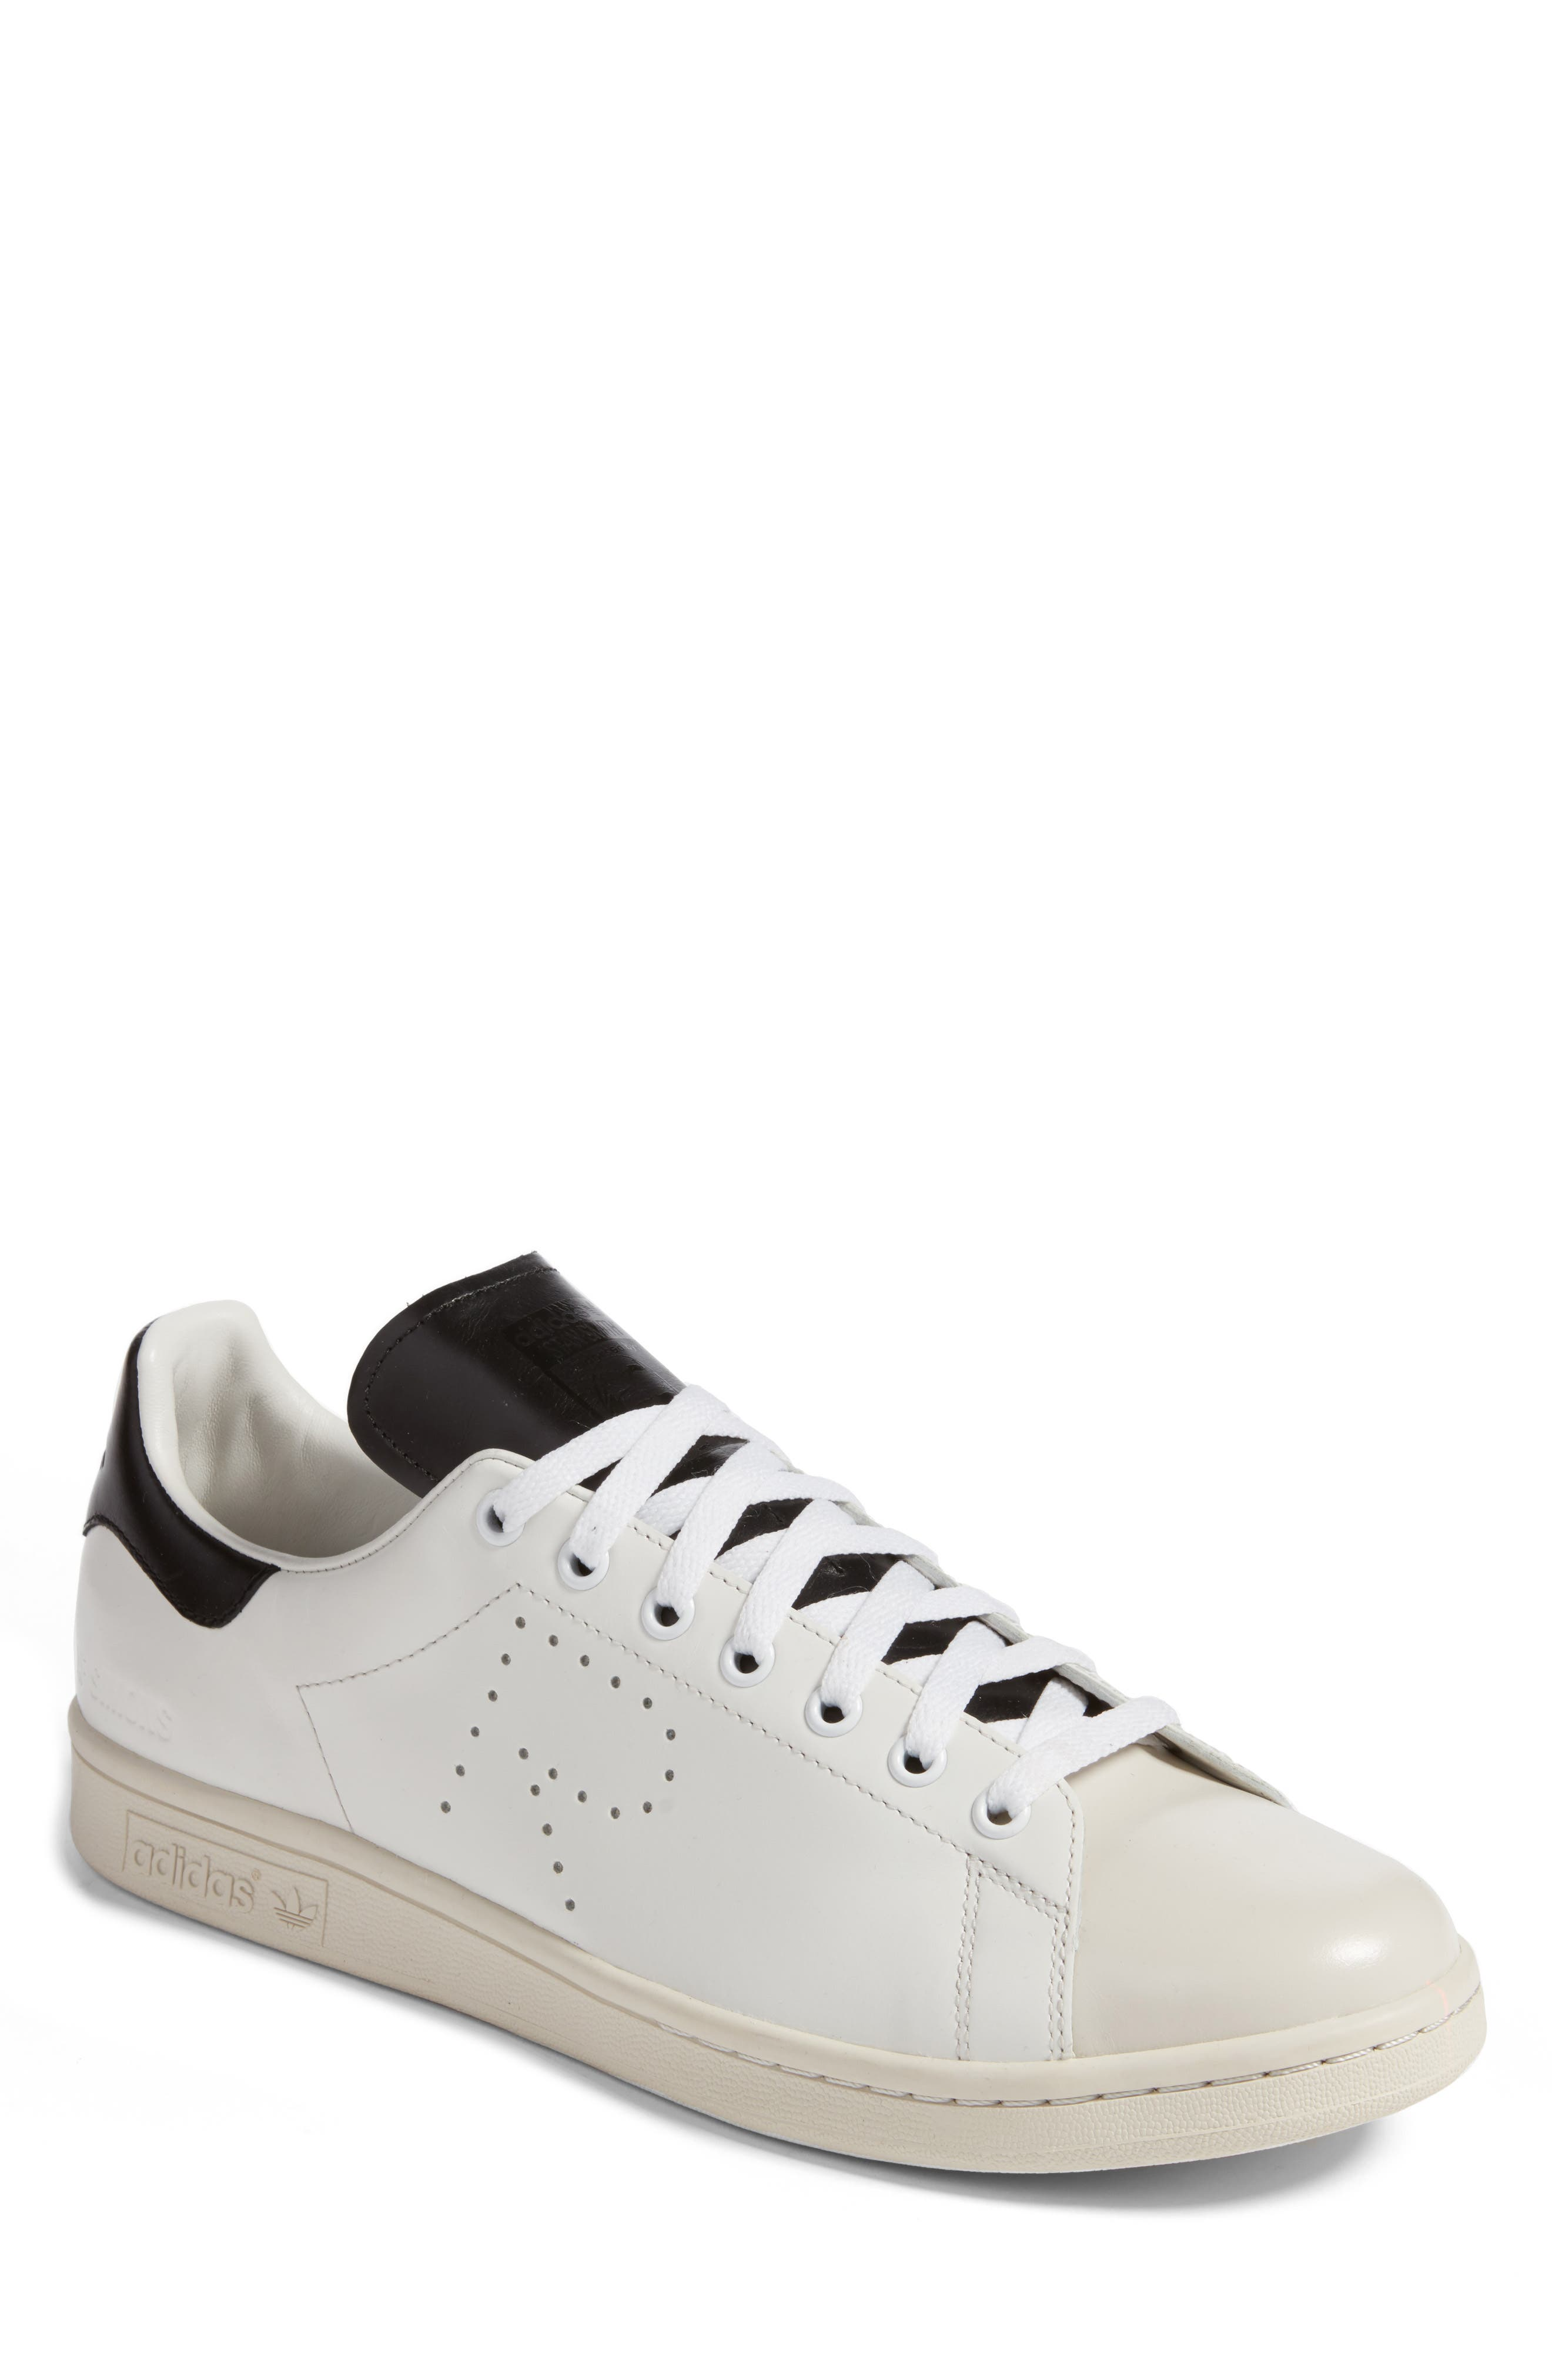 adidas by Raf Simons Stan Smith Sneaker (Women)